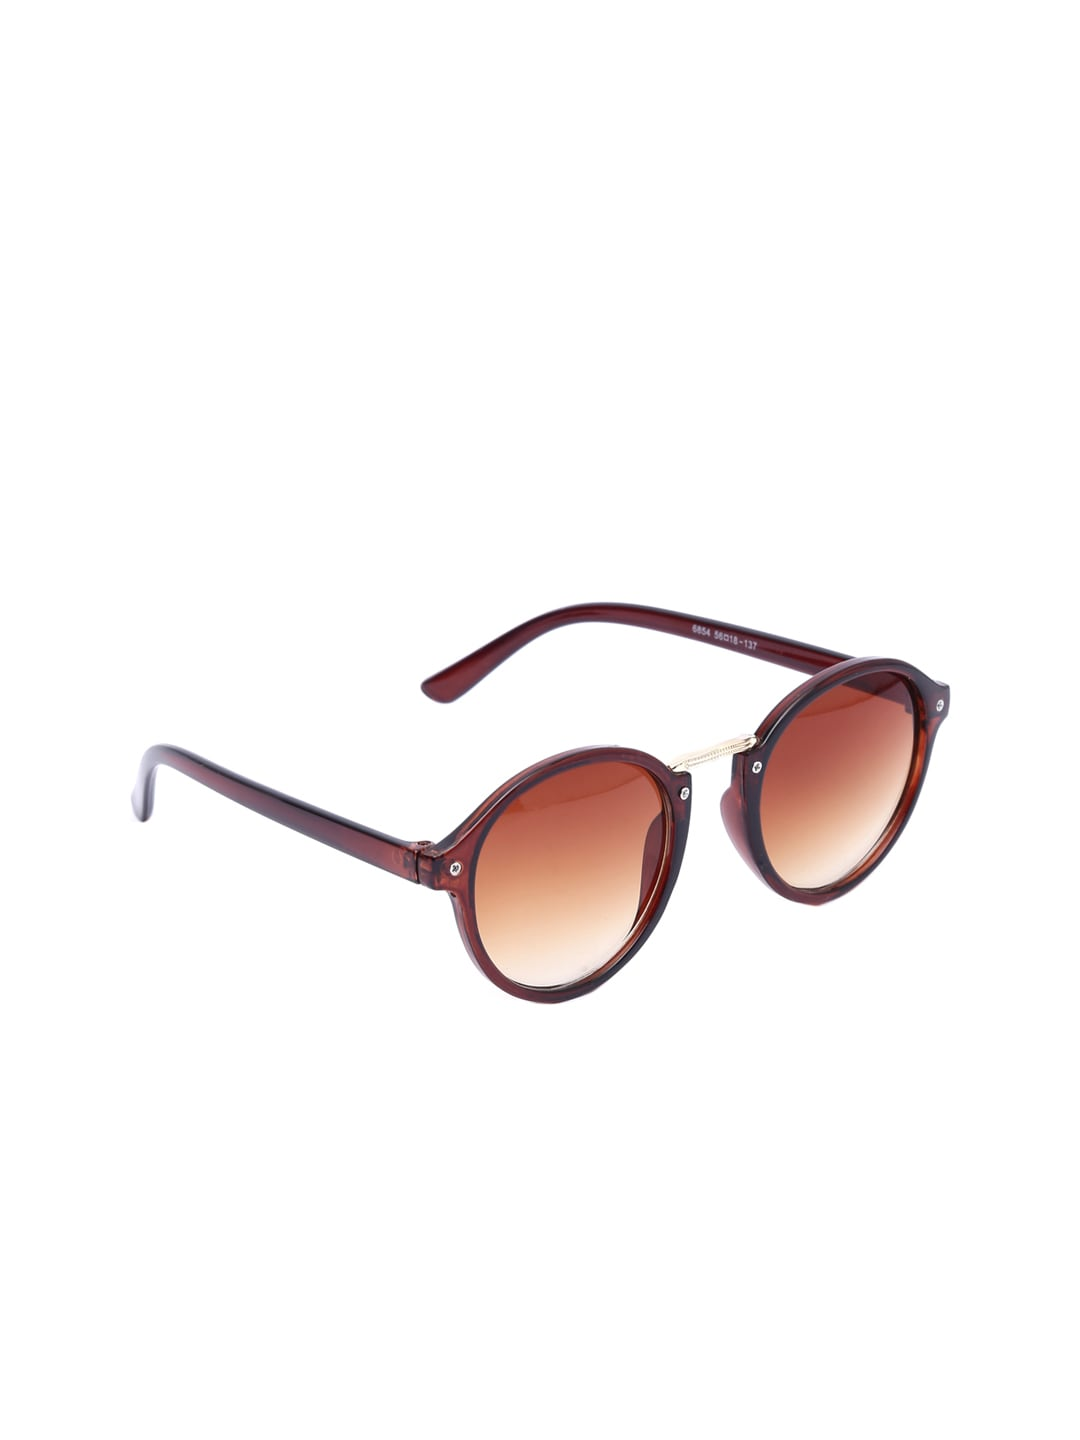 60c09db8de45 Accessory Gift Set Casual Earrings Sunglasses - Buy Accessory Gift Set  Casual Earrings Sunglasses online in India